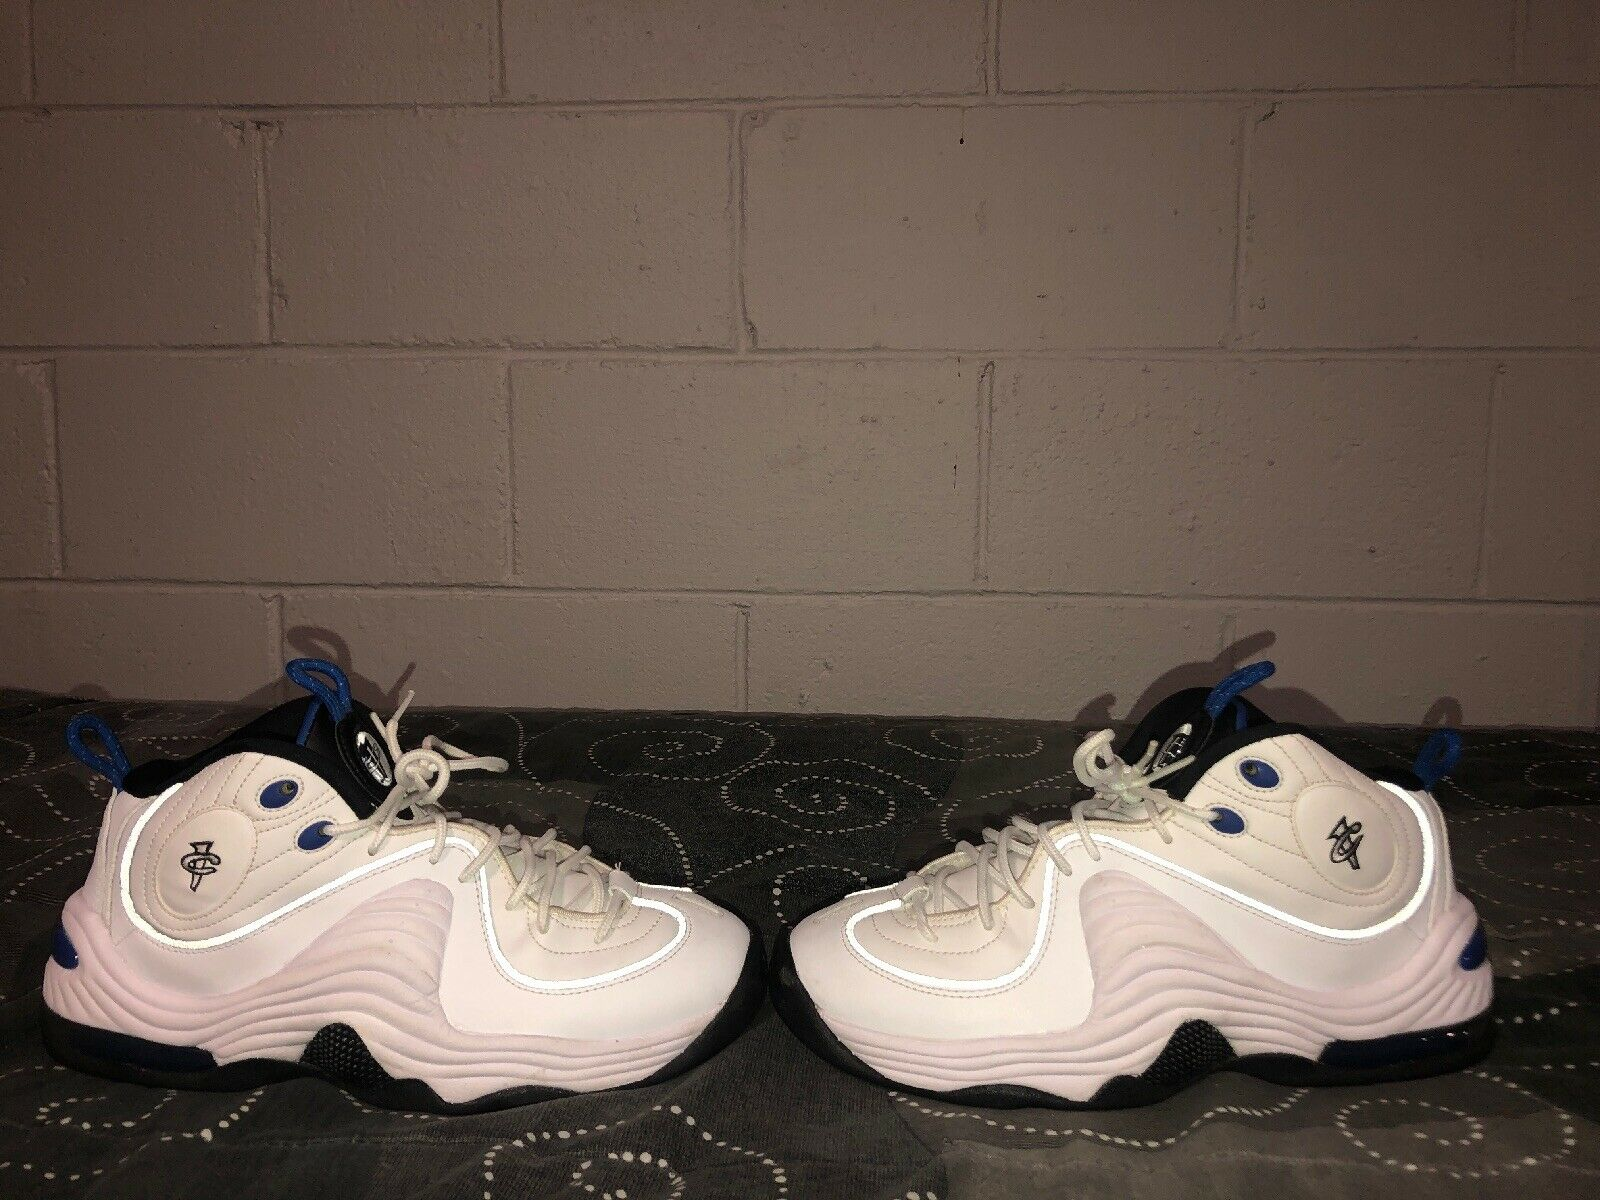 Nike Air Penny II Home Mens Basketball shoes Size 8 White bluee Black 333886-100